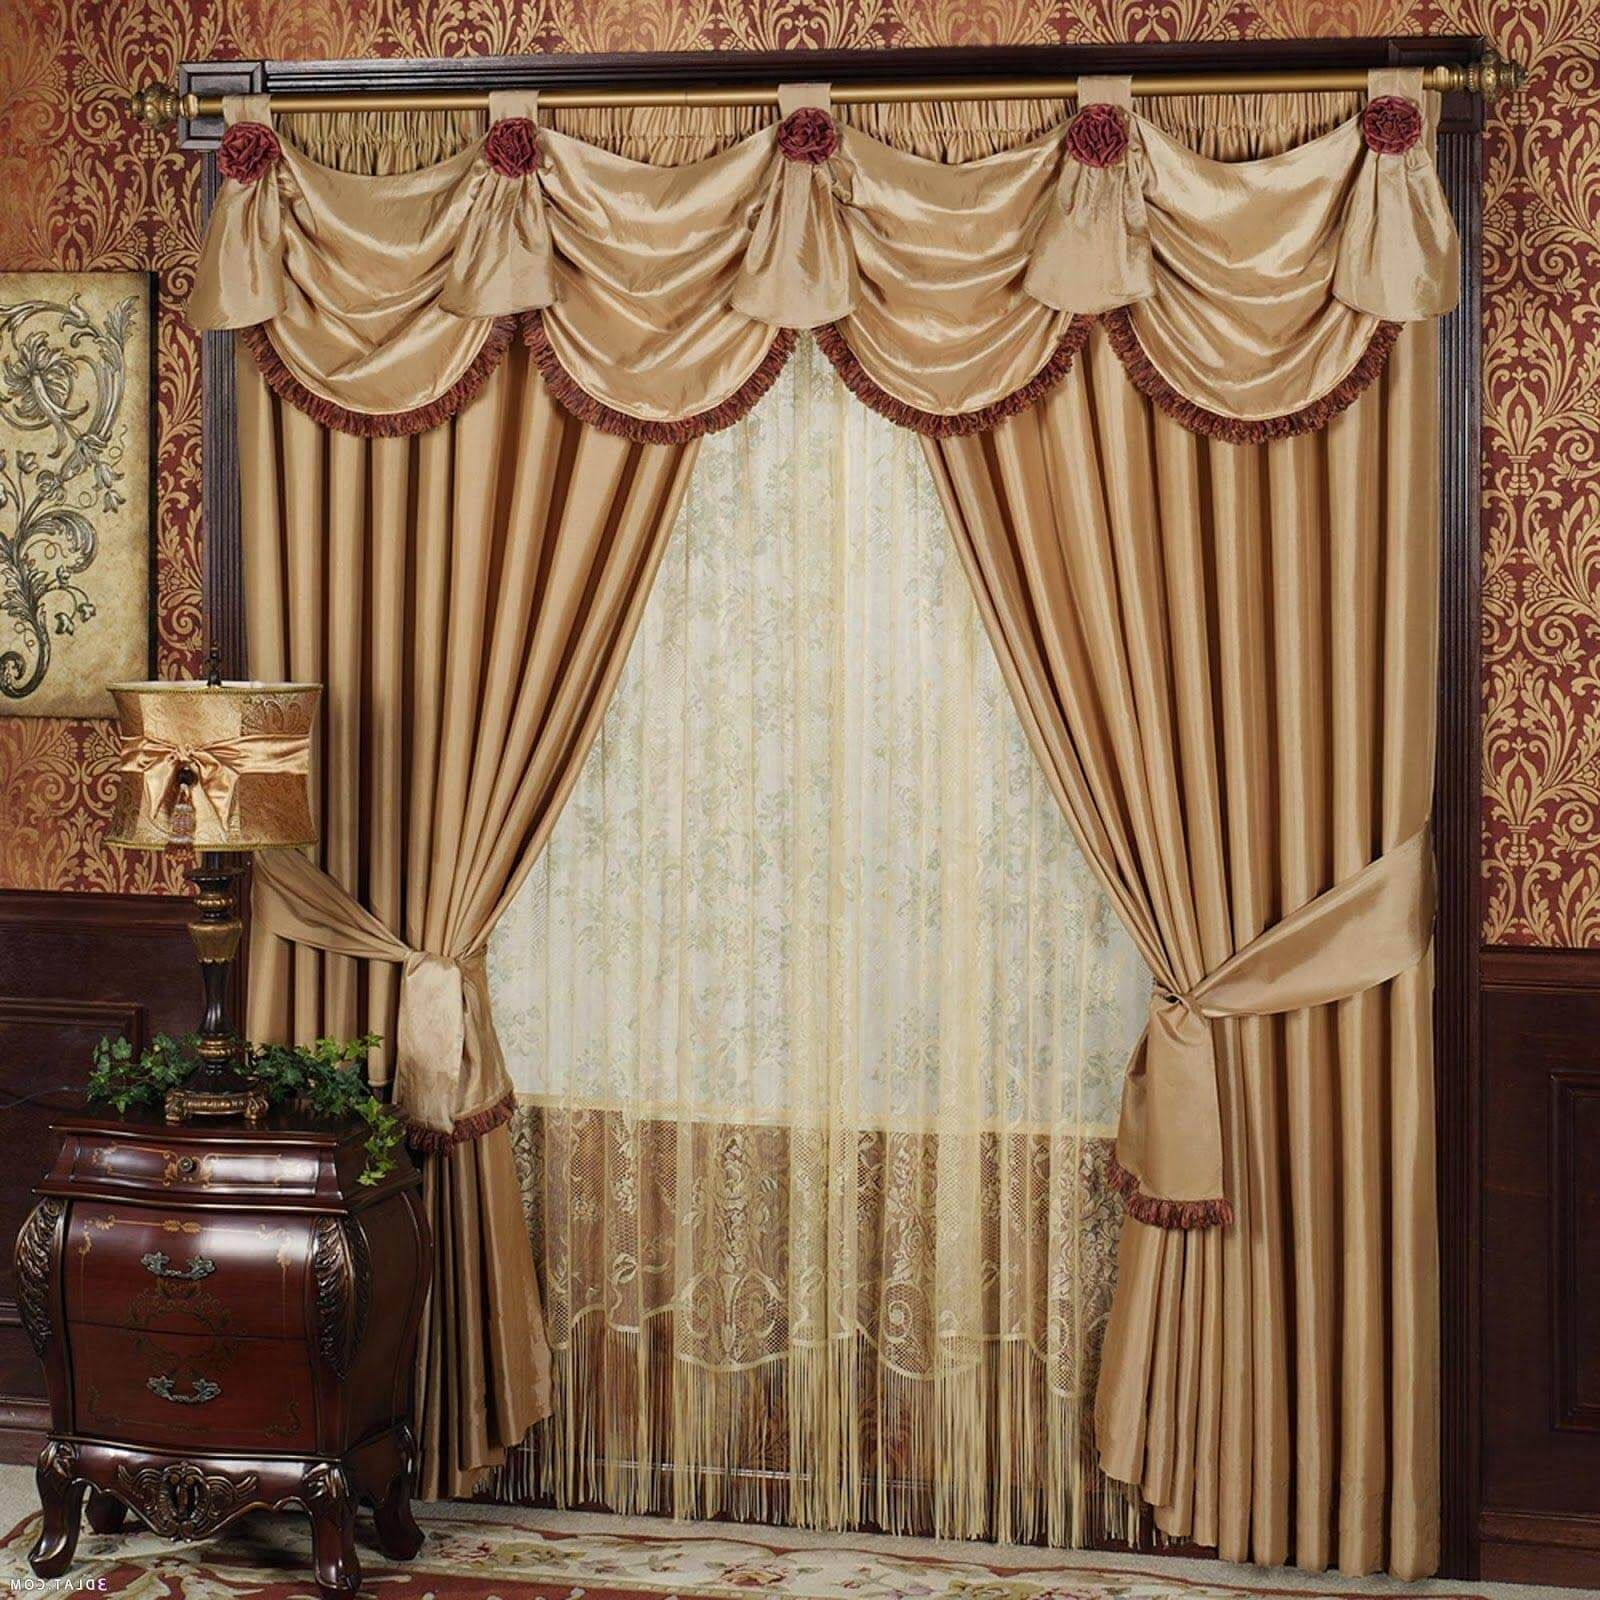 Curtains Drape Ideas For House Interior In 2021 Curtains Living Room Valances For Living Room Elegant Curtains Elegant drapes living room